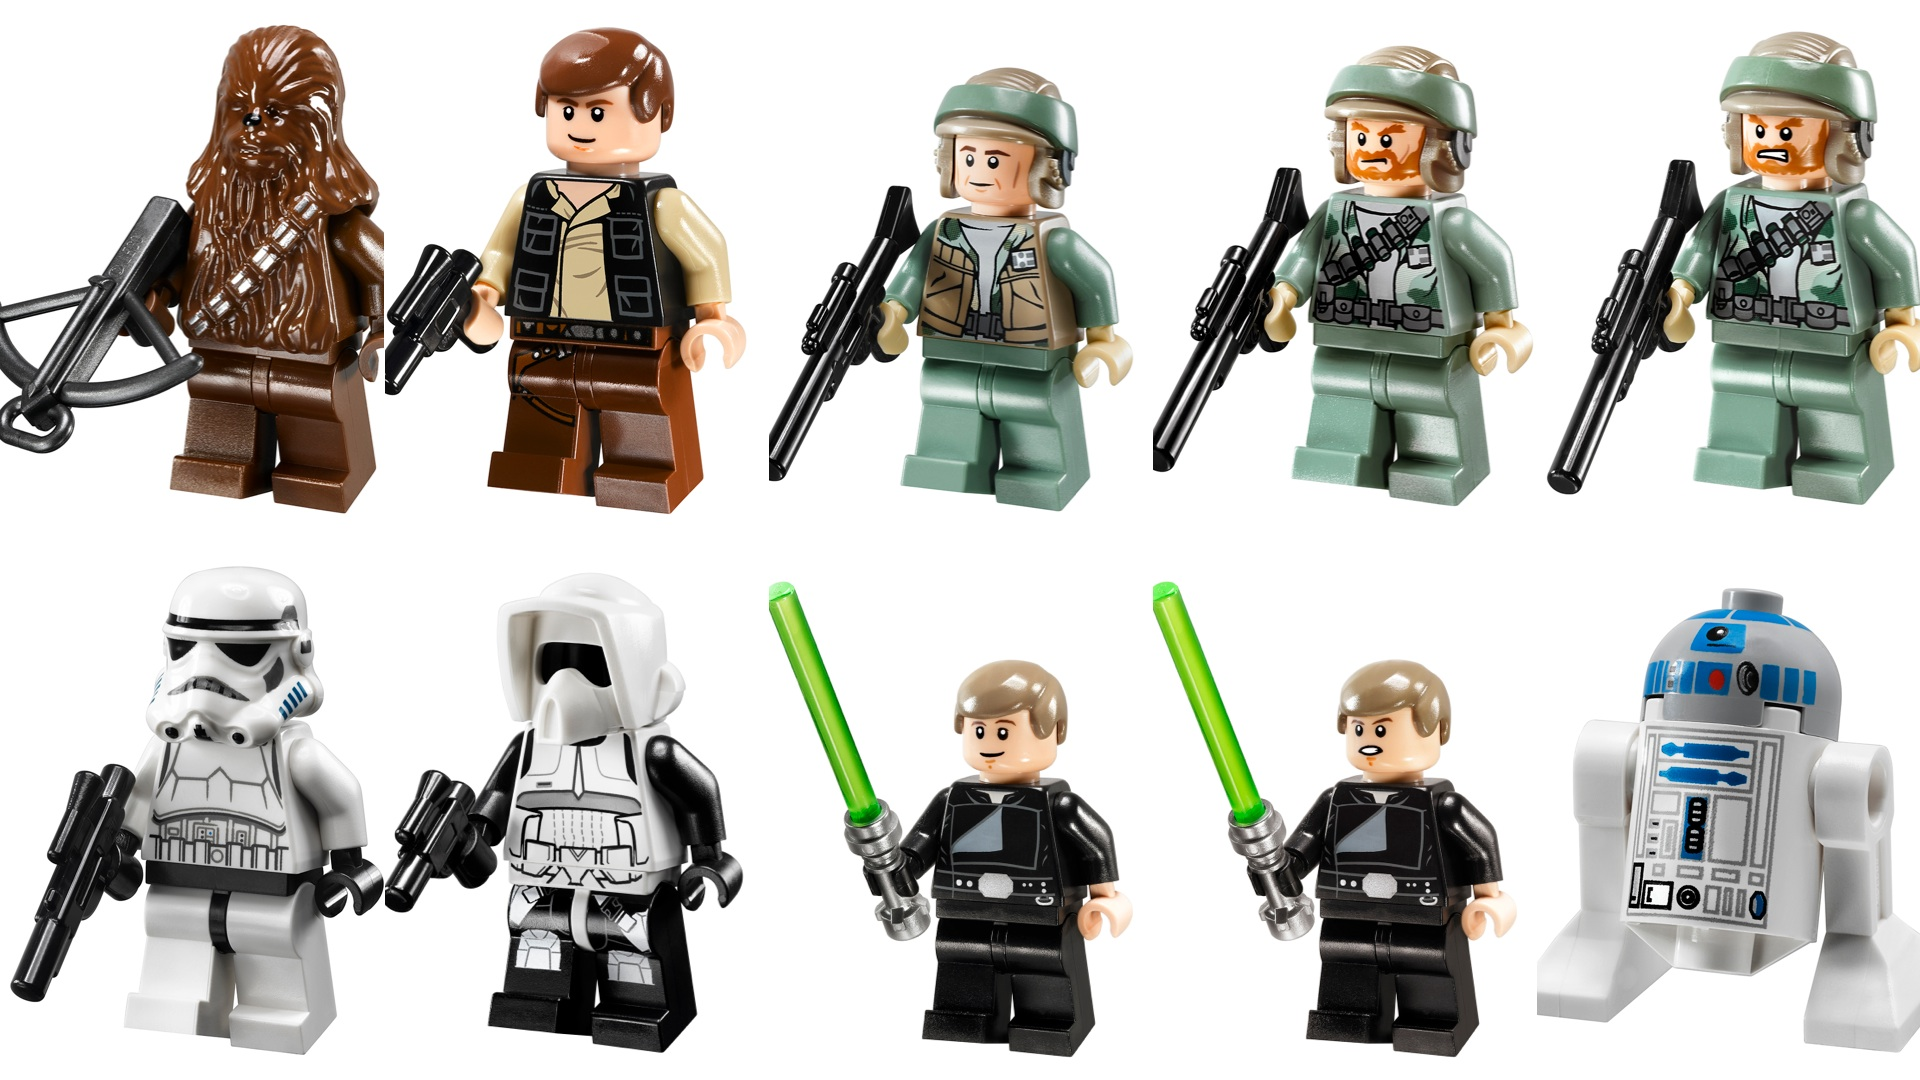 Star Wars Toys 2013 : Lego star wars toys wallpaper high definition